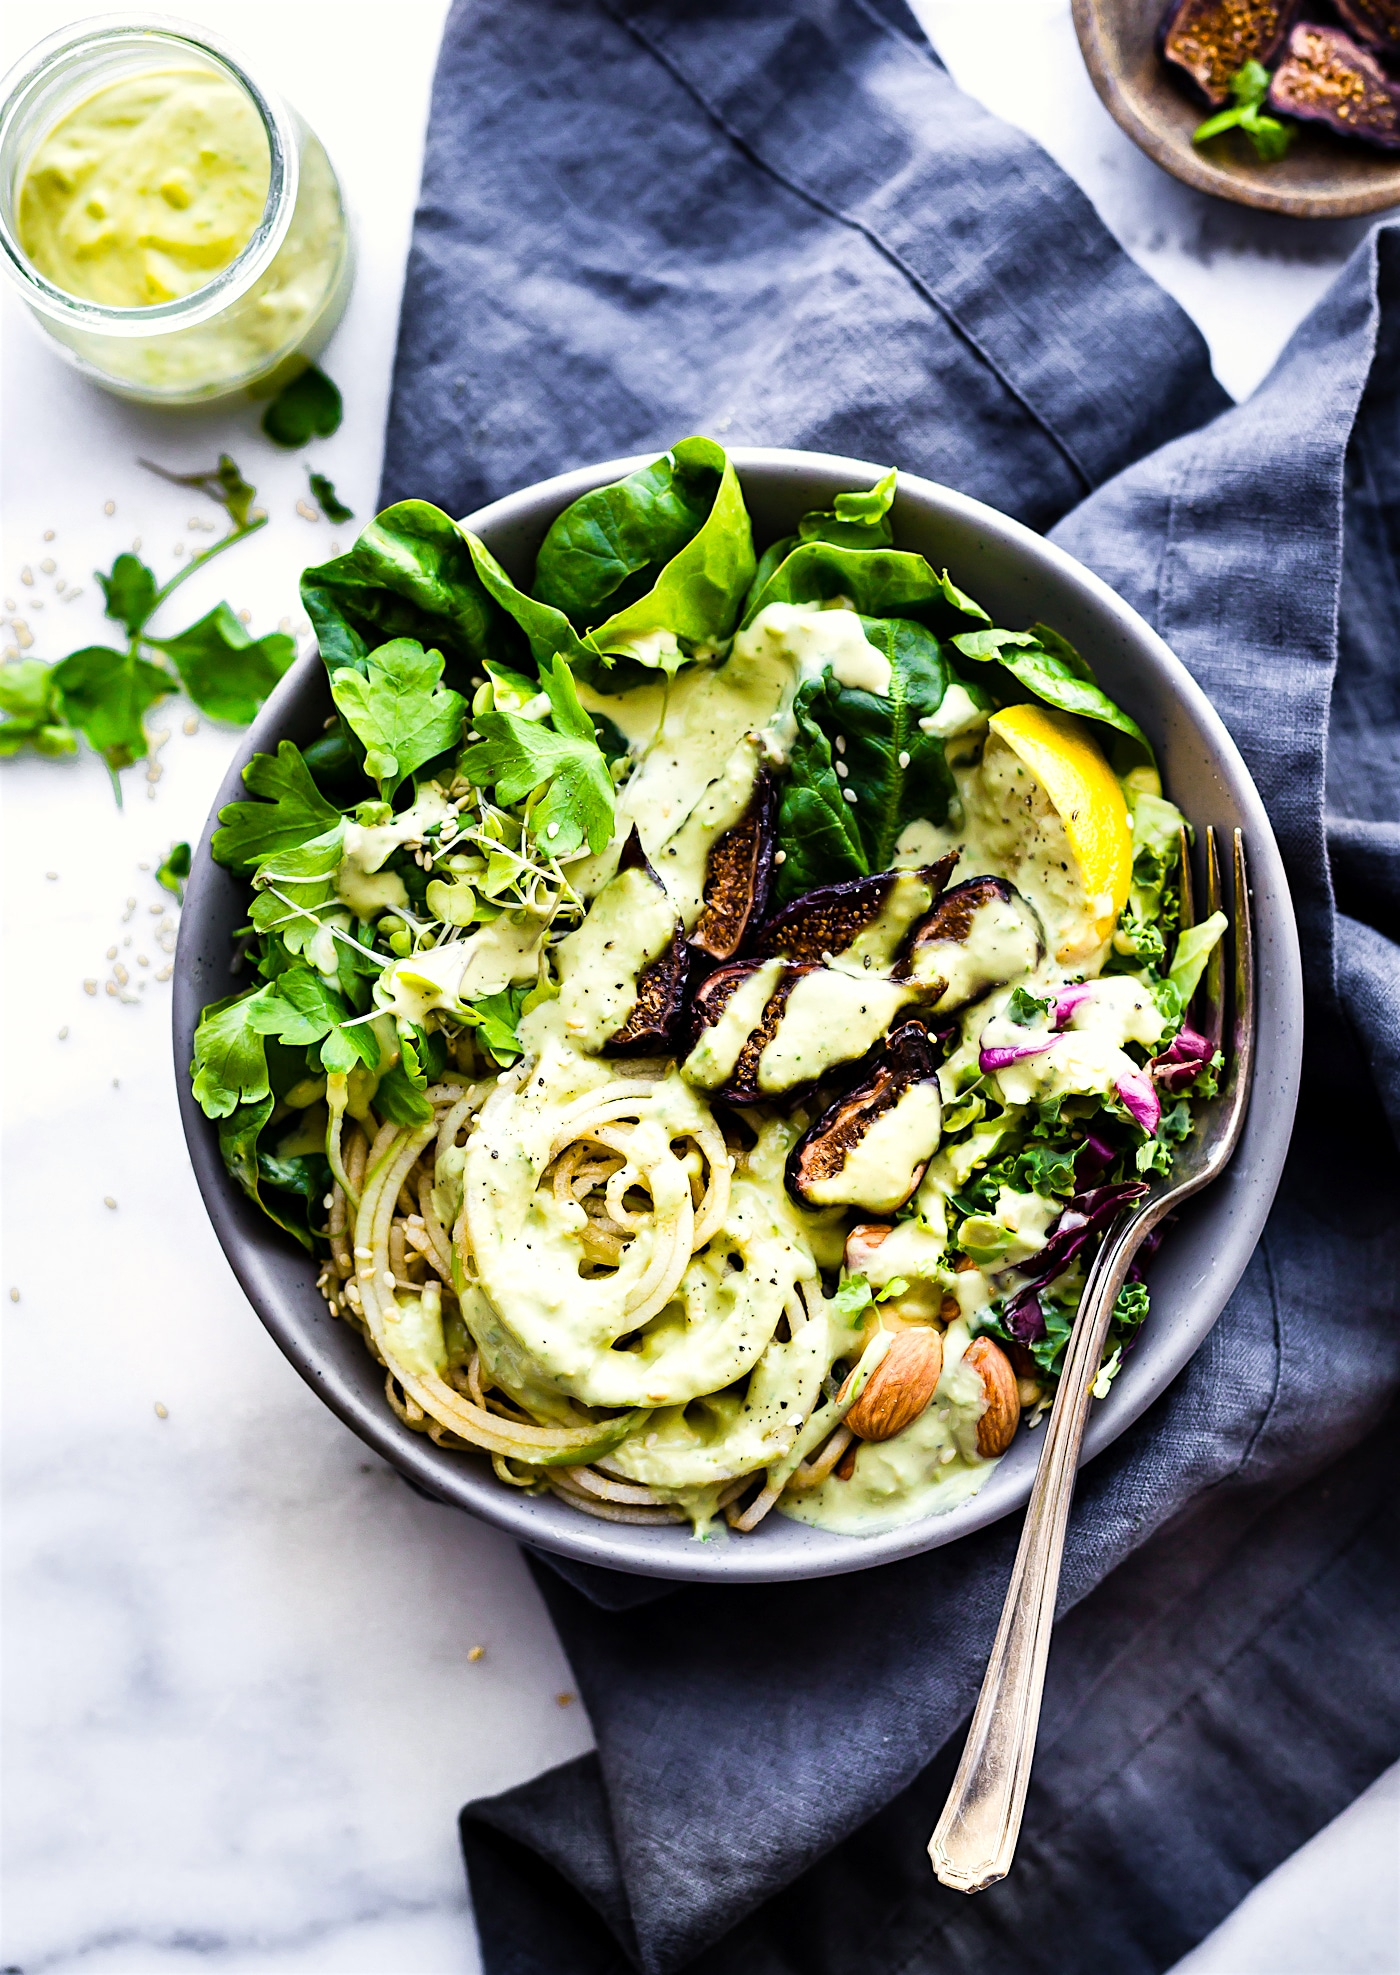 Quick and Easy Green Goddess Fig Nourish Bowls! These plant powered nourish bowls are packed with super greens, healthy fats, nature's candy (Fruit and Figs), and topped with homemade green goddess dressing. They will fill you up and nourish you all at once. Paleo, Vegan, and Whole 30 friendly!